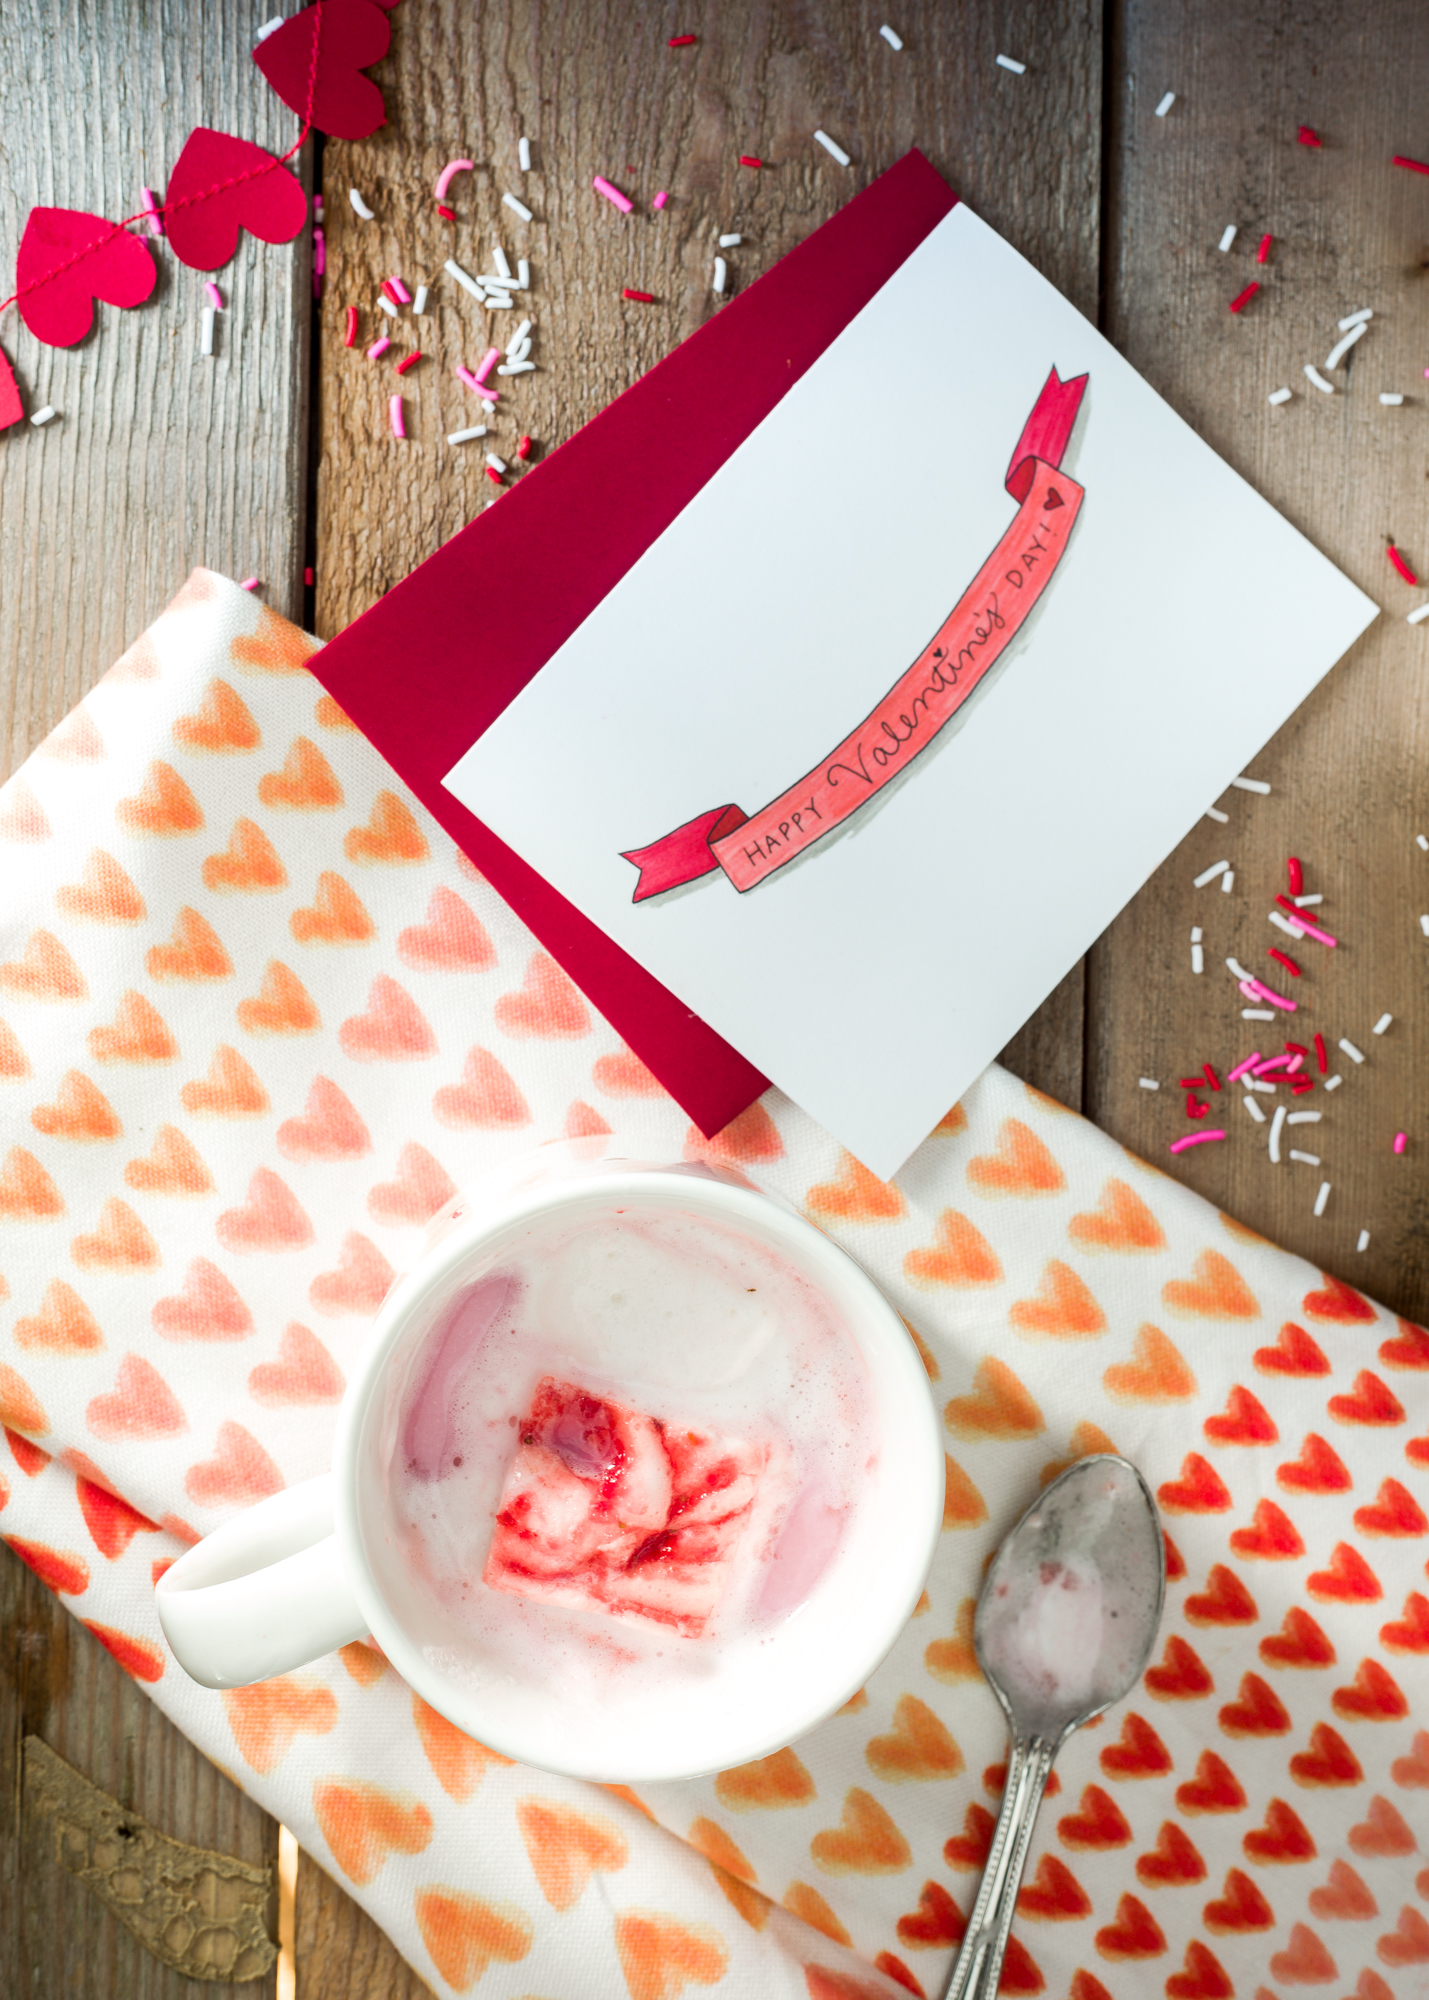 Strawberry Swirl Marshmallow from  Luv Cooks , Happy Valentine's Day card  from the  TLK Shop , Mug  andlinen from  West Elm , Pink Hot Chocolate  from Sur La Table.